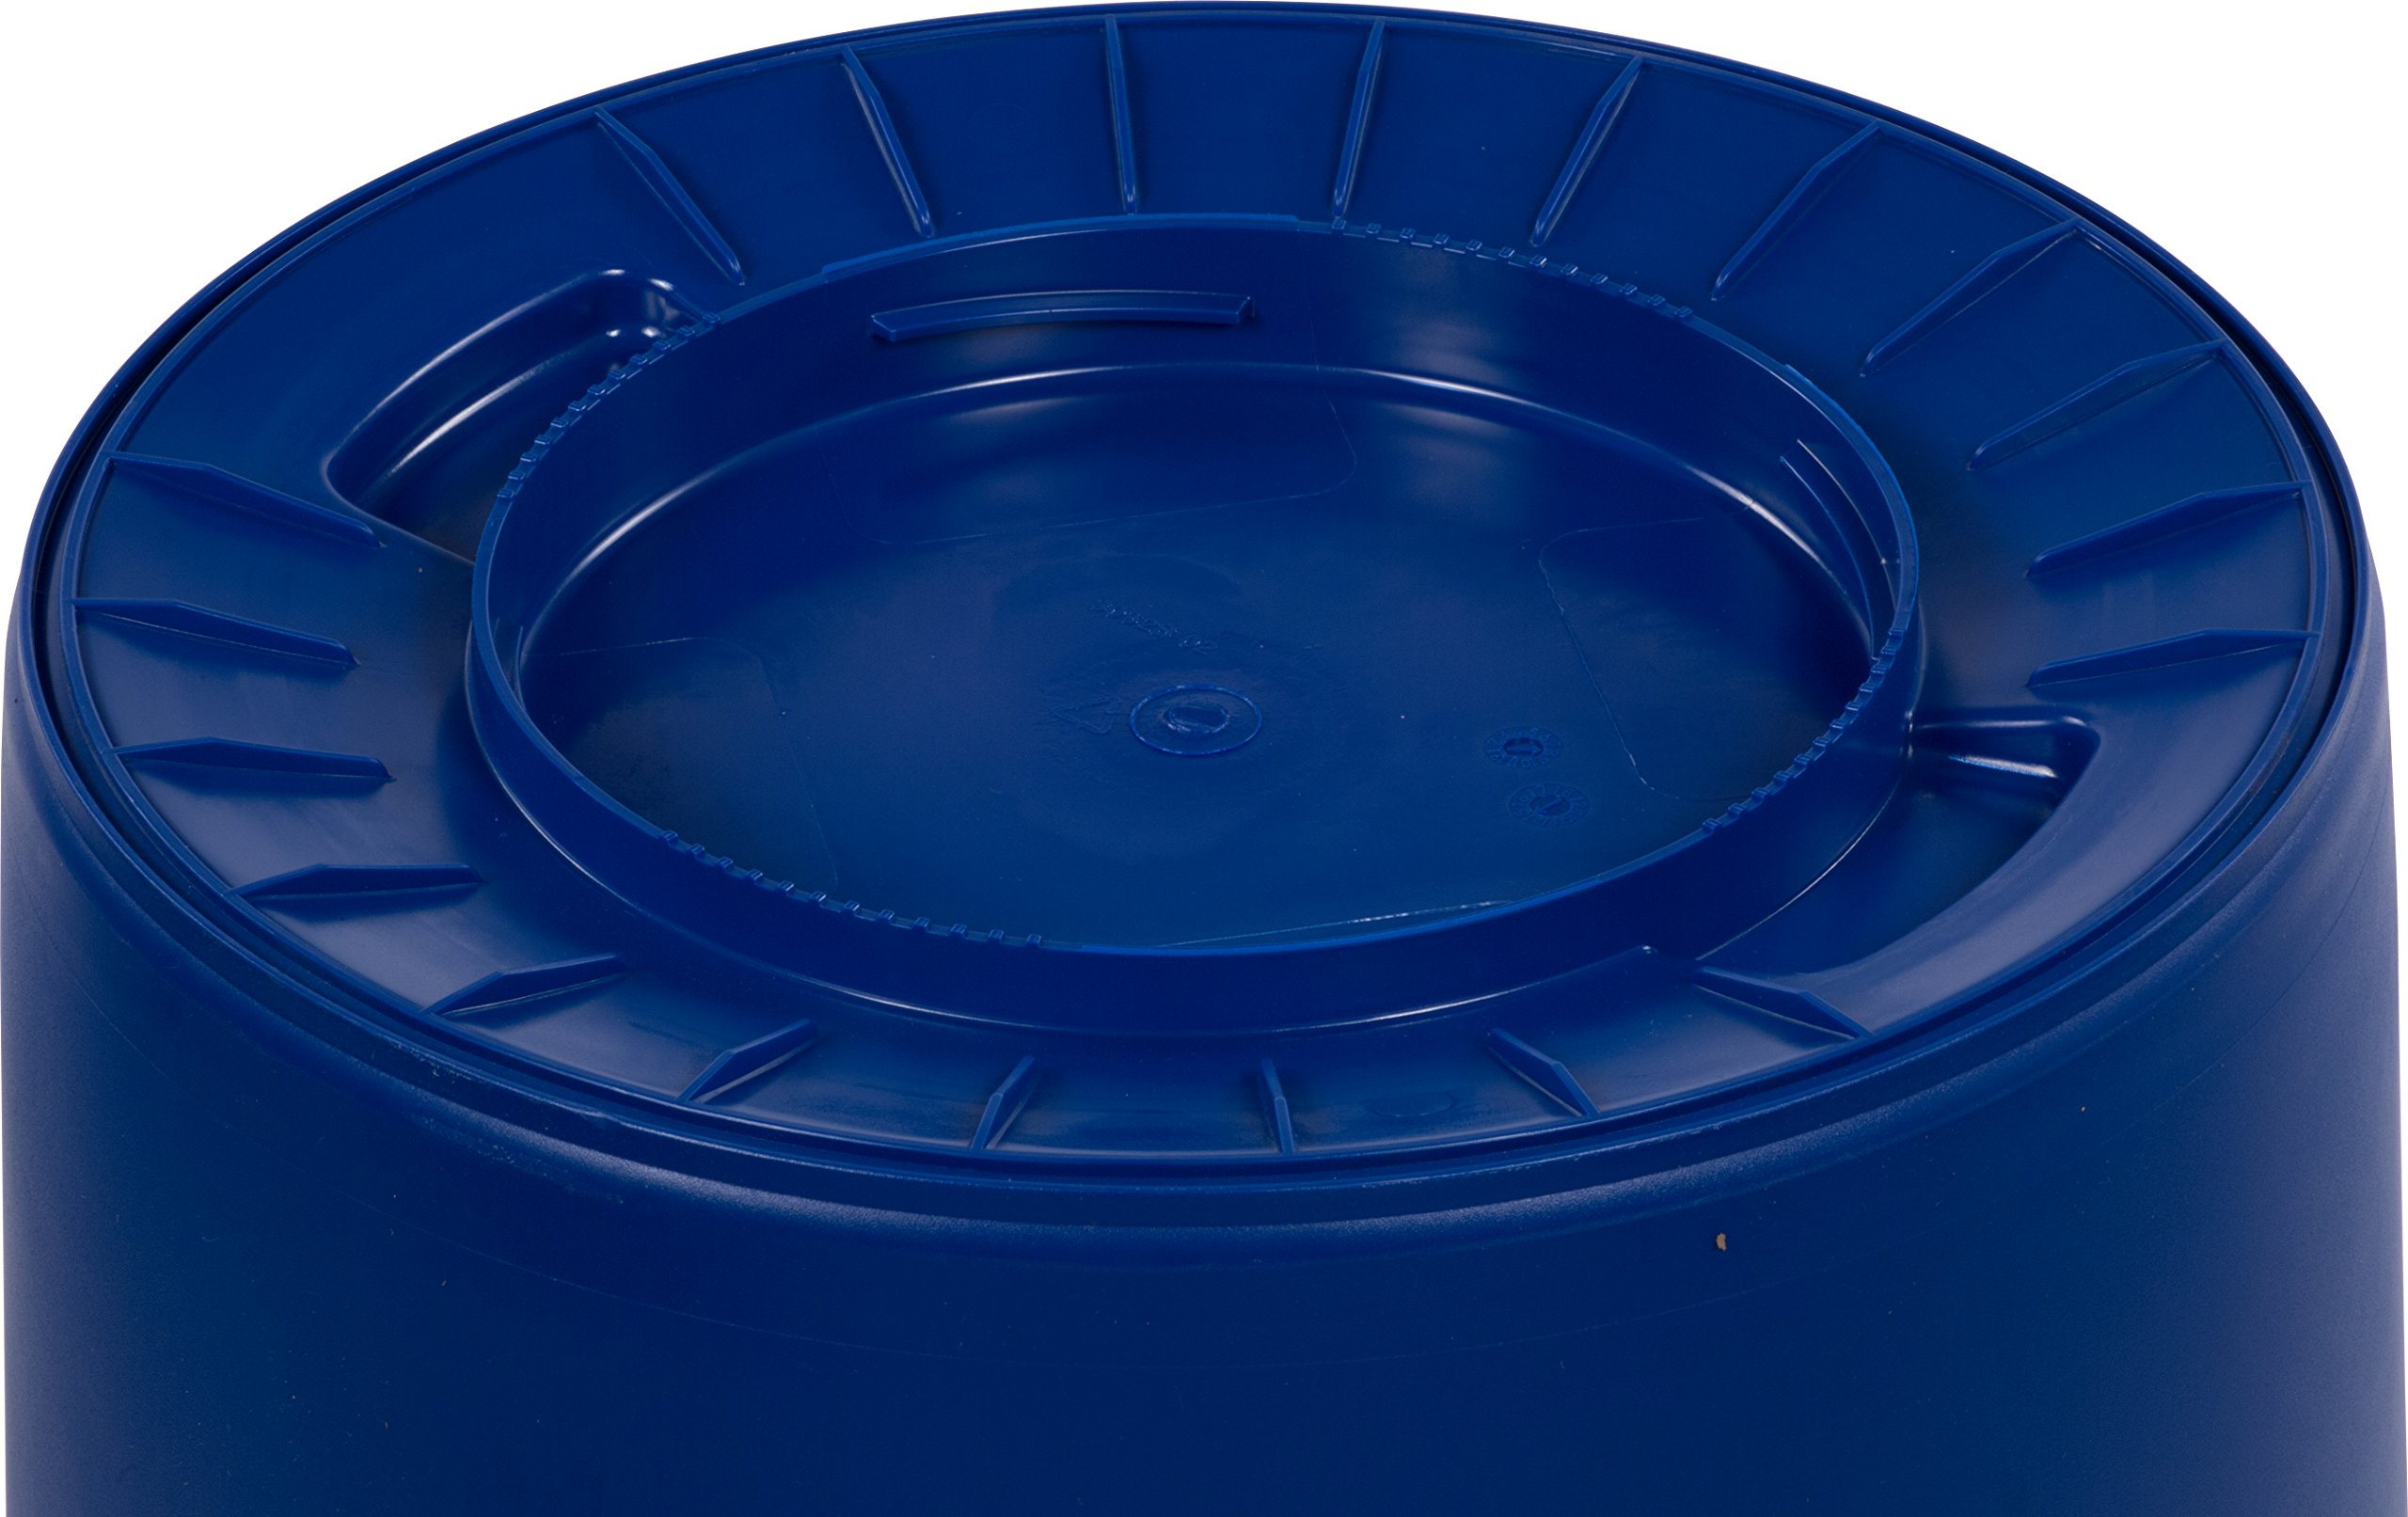 Carlisle 341032REC14 Bronco LLDPE Recycle Waste Container, 32-gal. Capacity, 22.37 x 27-3/4, Blue (Case of 4) by Carlisle (Image #3)